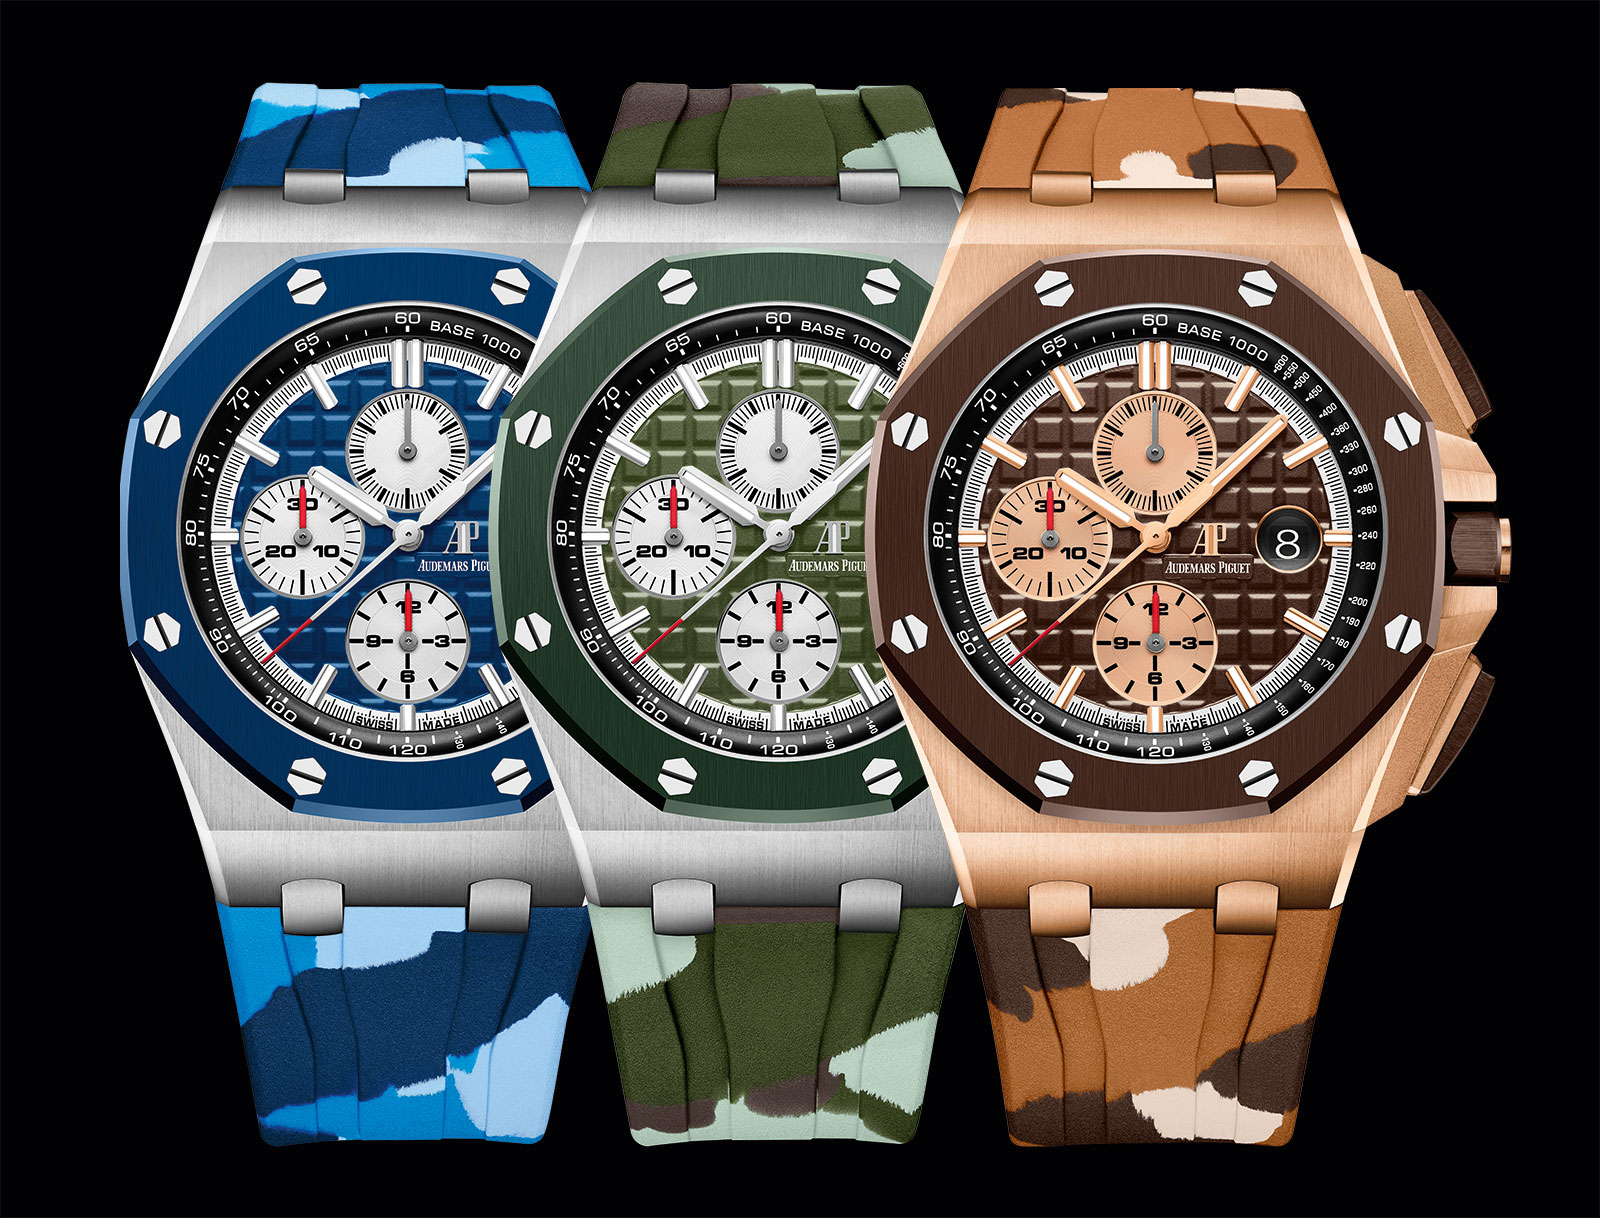 Sihh 2019 introducing the audemars piguet royal oak offshore chronograph camo sjx watches for Ap royal oak offshore chronograph